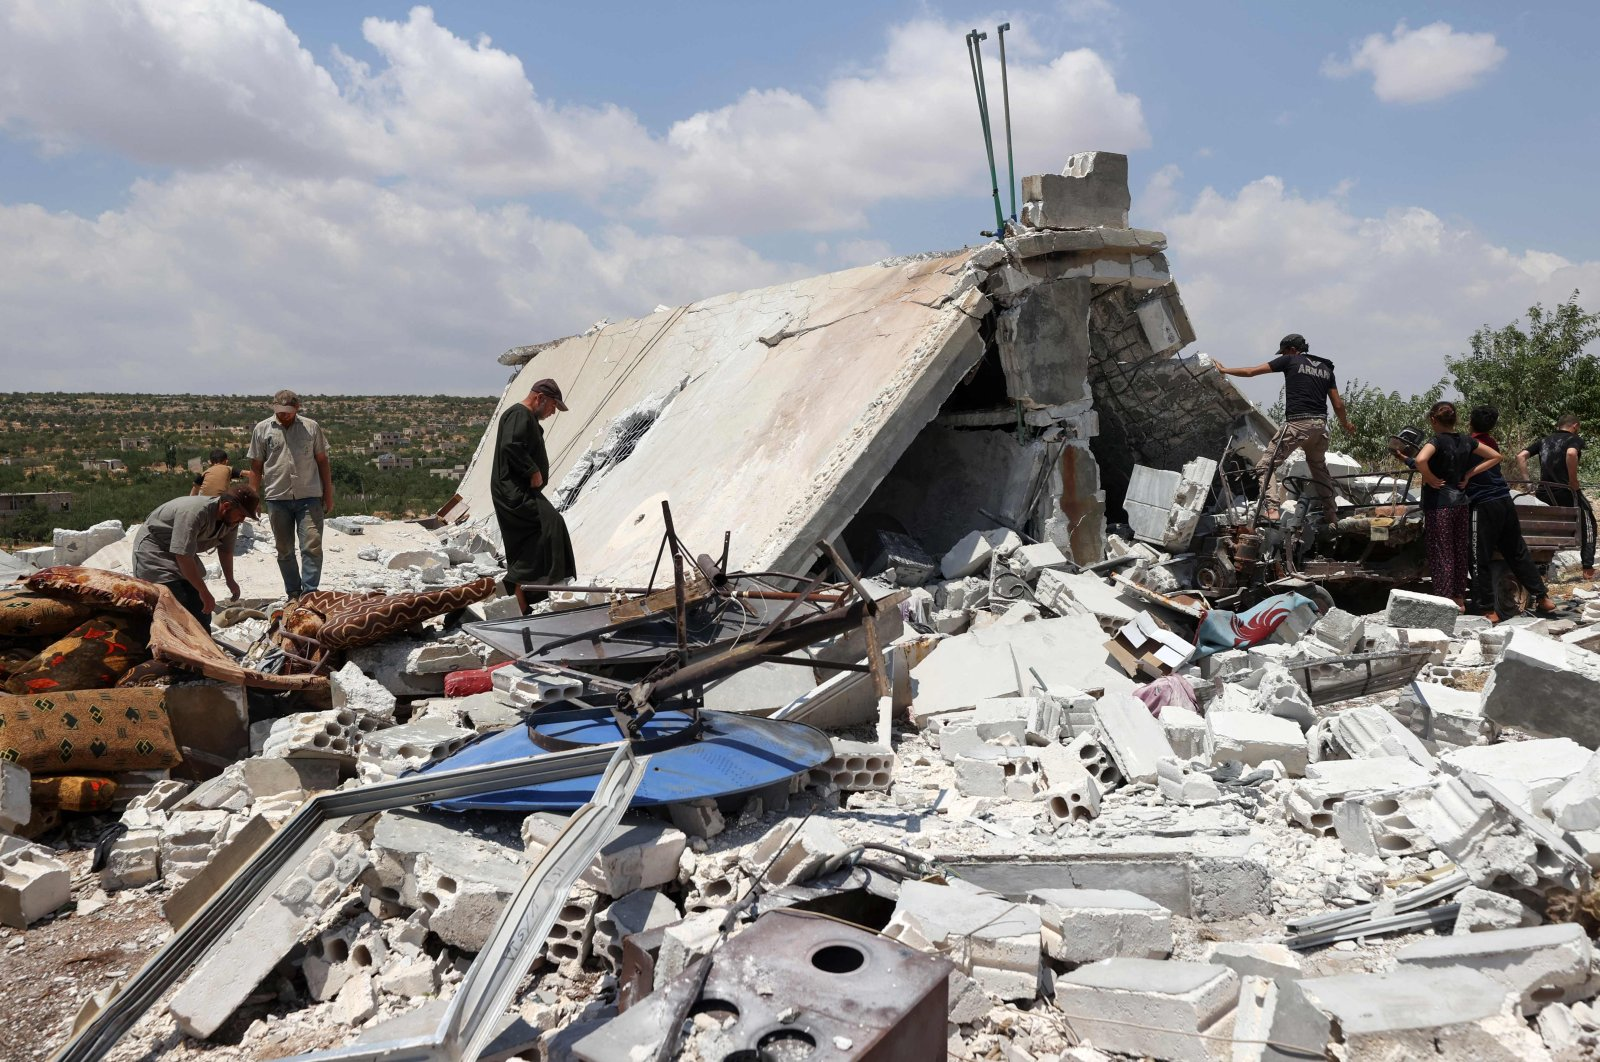 People salvage belongings from a house destroyed by a Russian missile attack in the Jabal al-Zawiya region in opposition-held Idlib province, Syria, July 4, 2021. (AFP Photo)